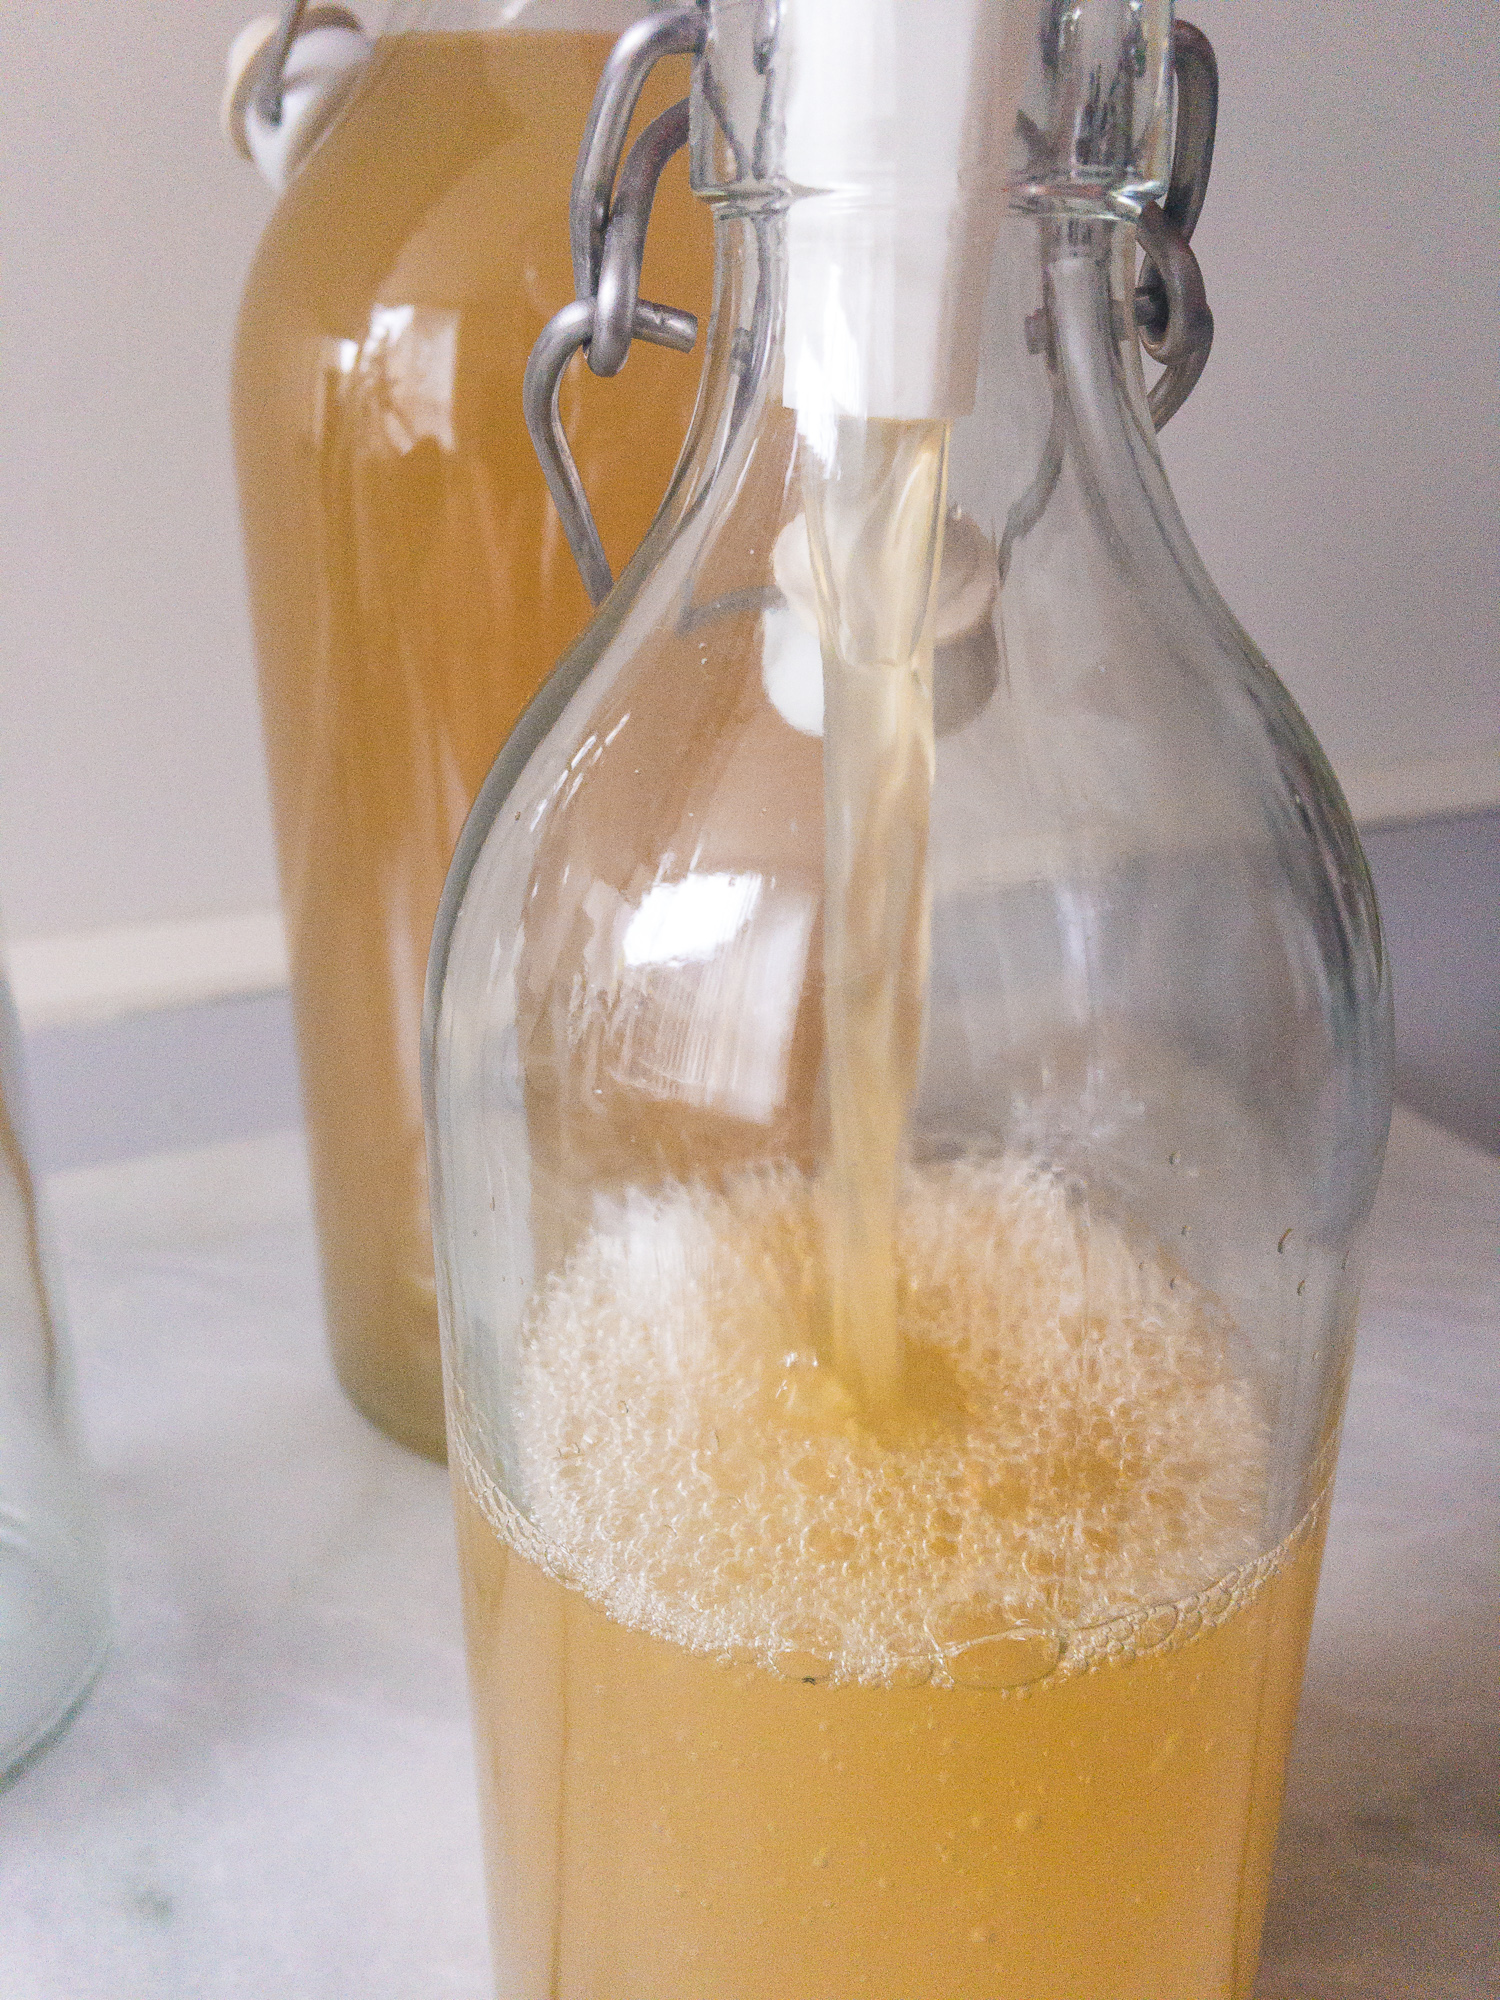 pouring elderflower cordial in bottles